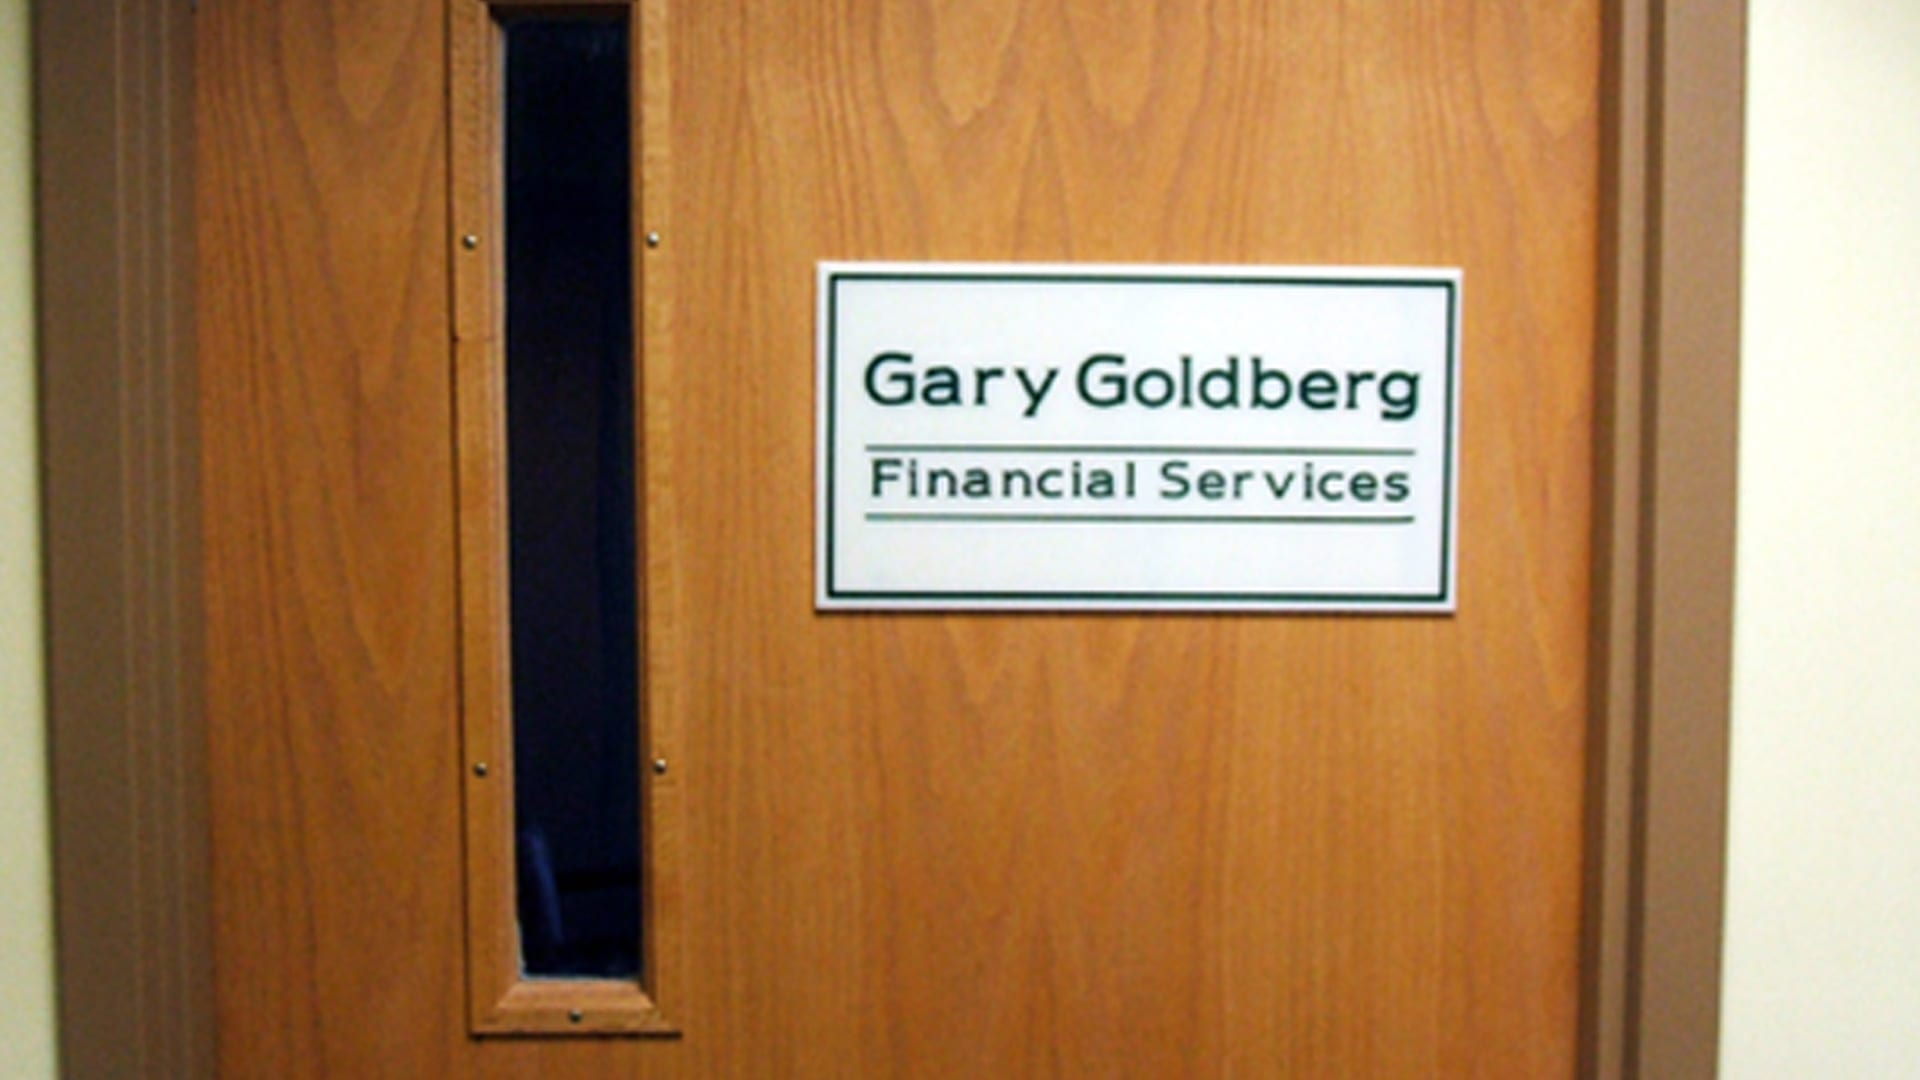 Door Signs - Gary Goldberg Financial Services